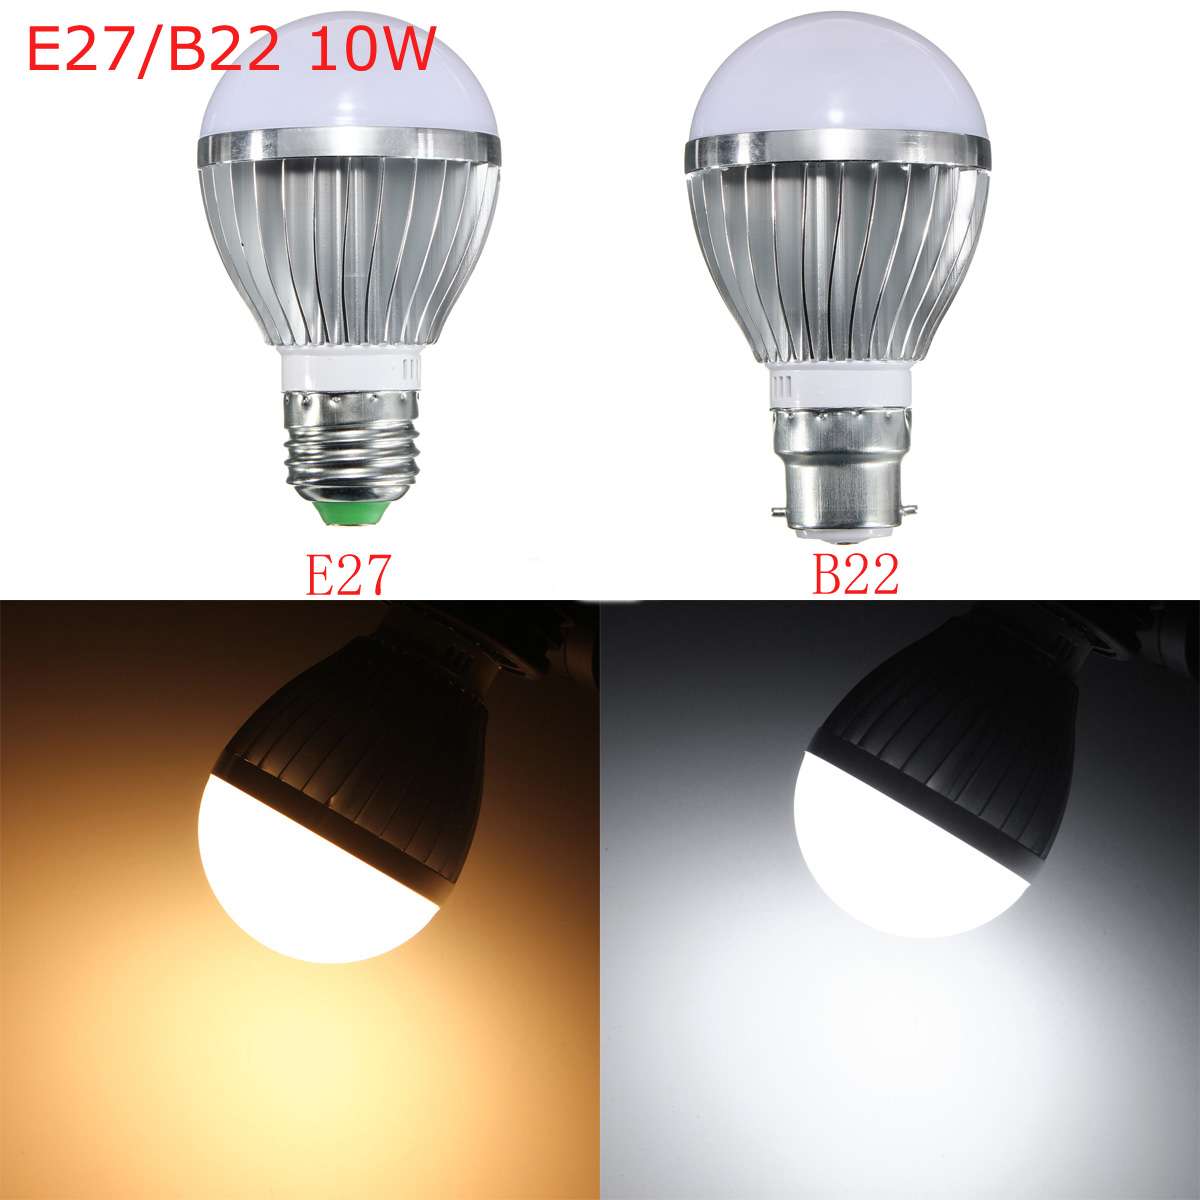 e27 b22 10w dimmable 14 smd5730 led bayonet edison bulb. Black Bedroom Furniture Sets. Home Design Ideas